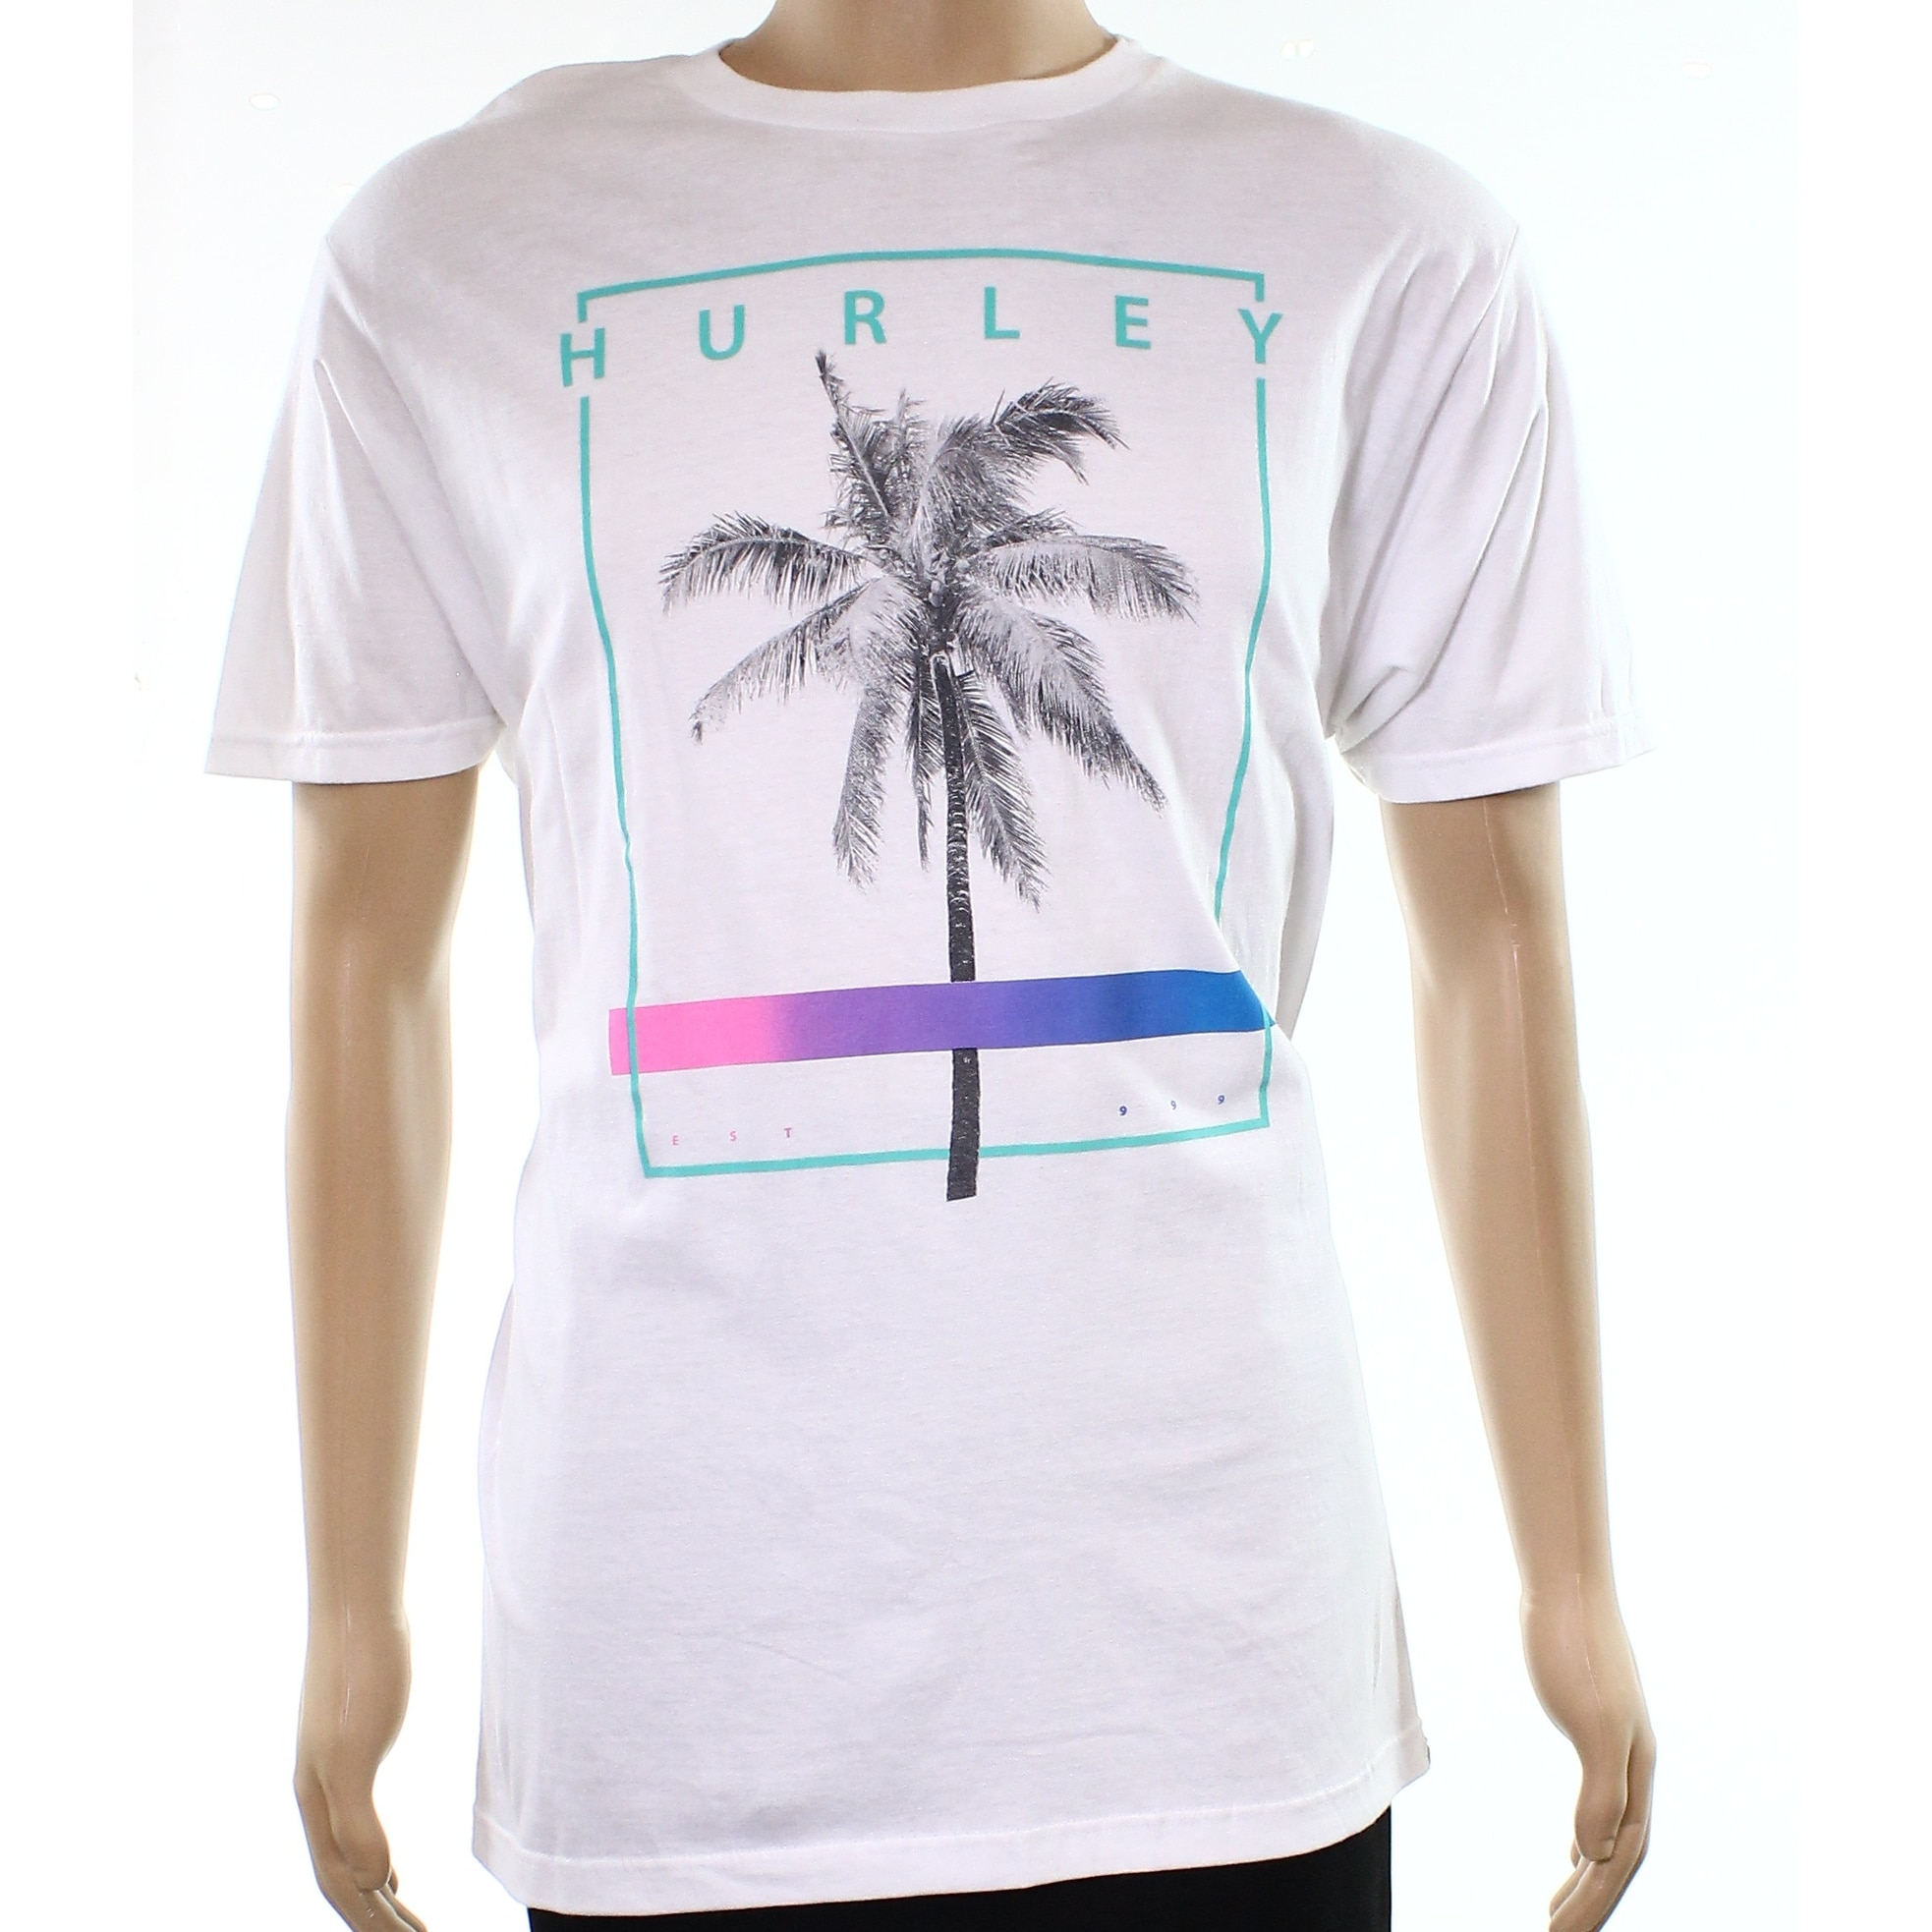 Hurley NEW White Mens Size L Palm Tree Logo Graphic Tee T